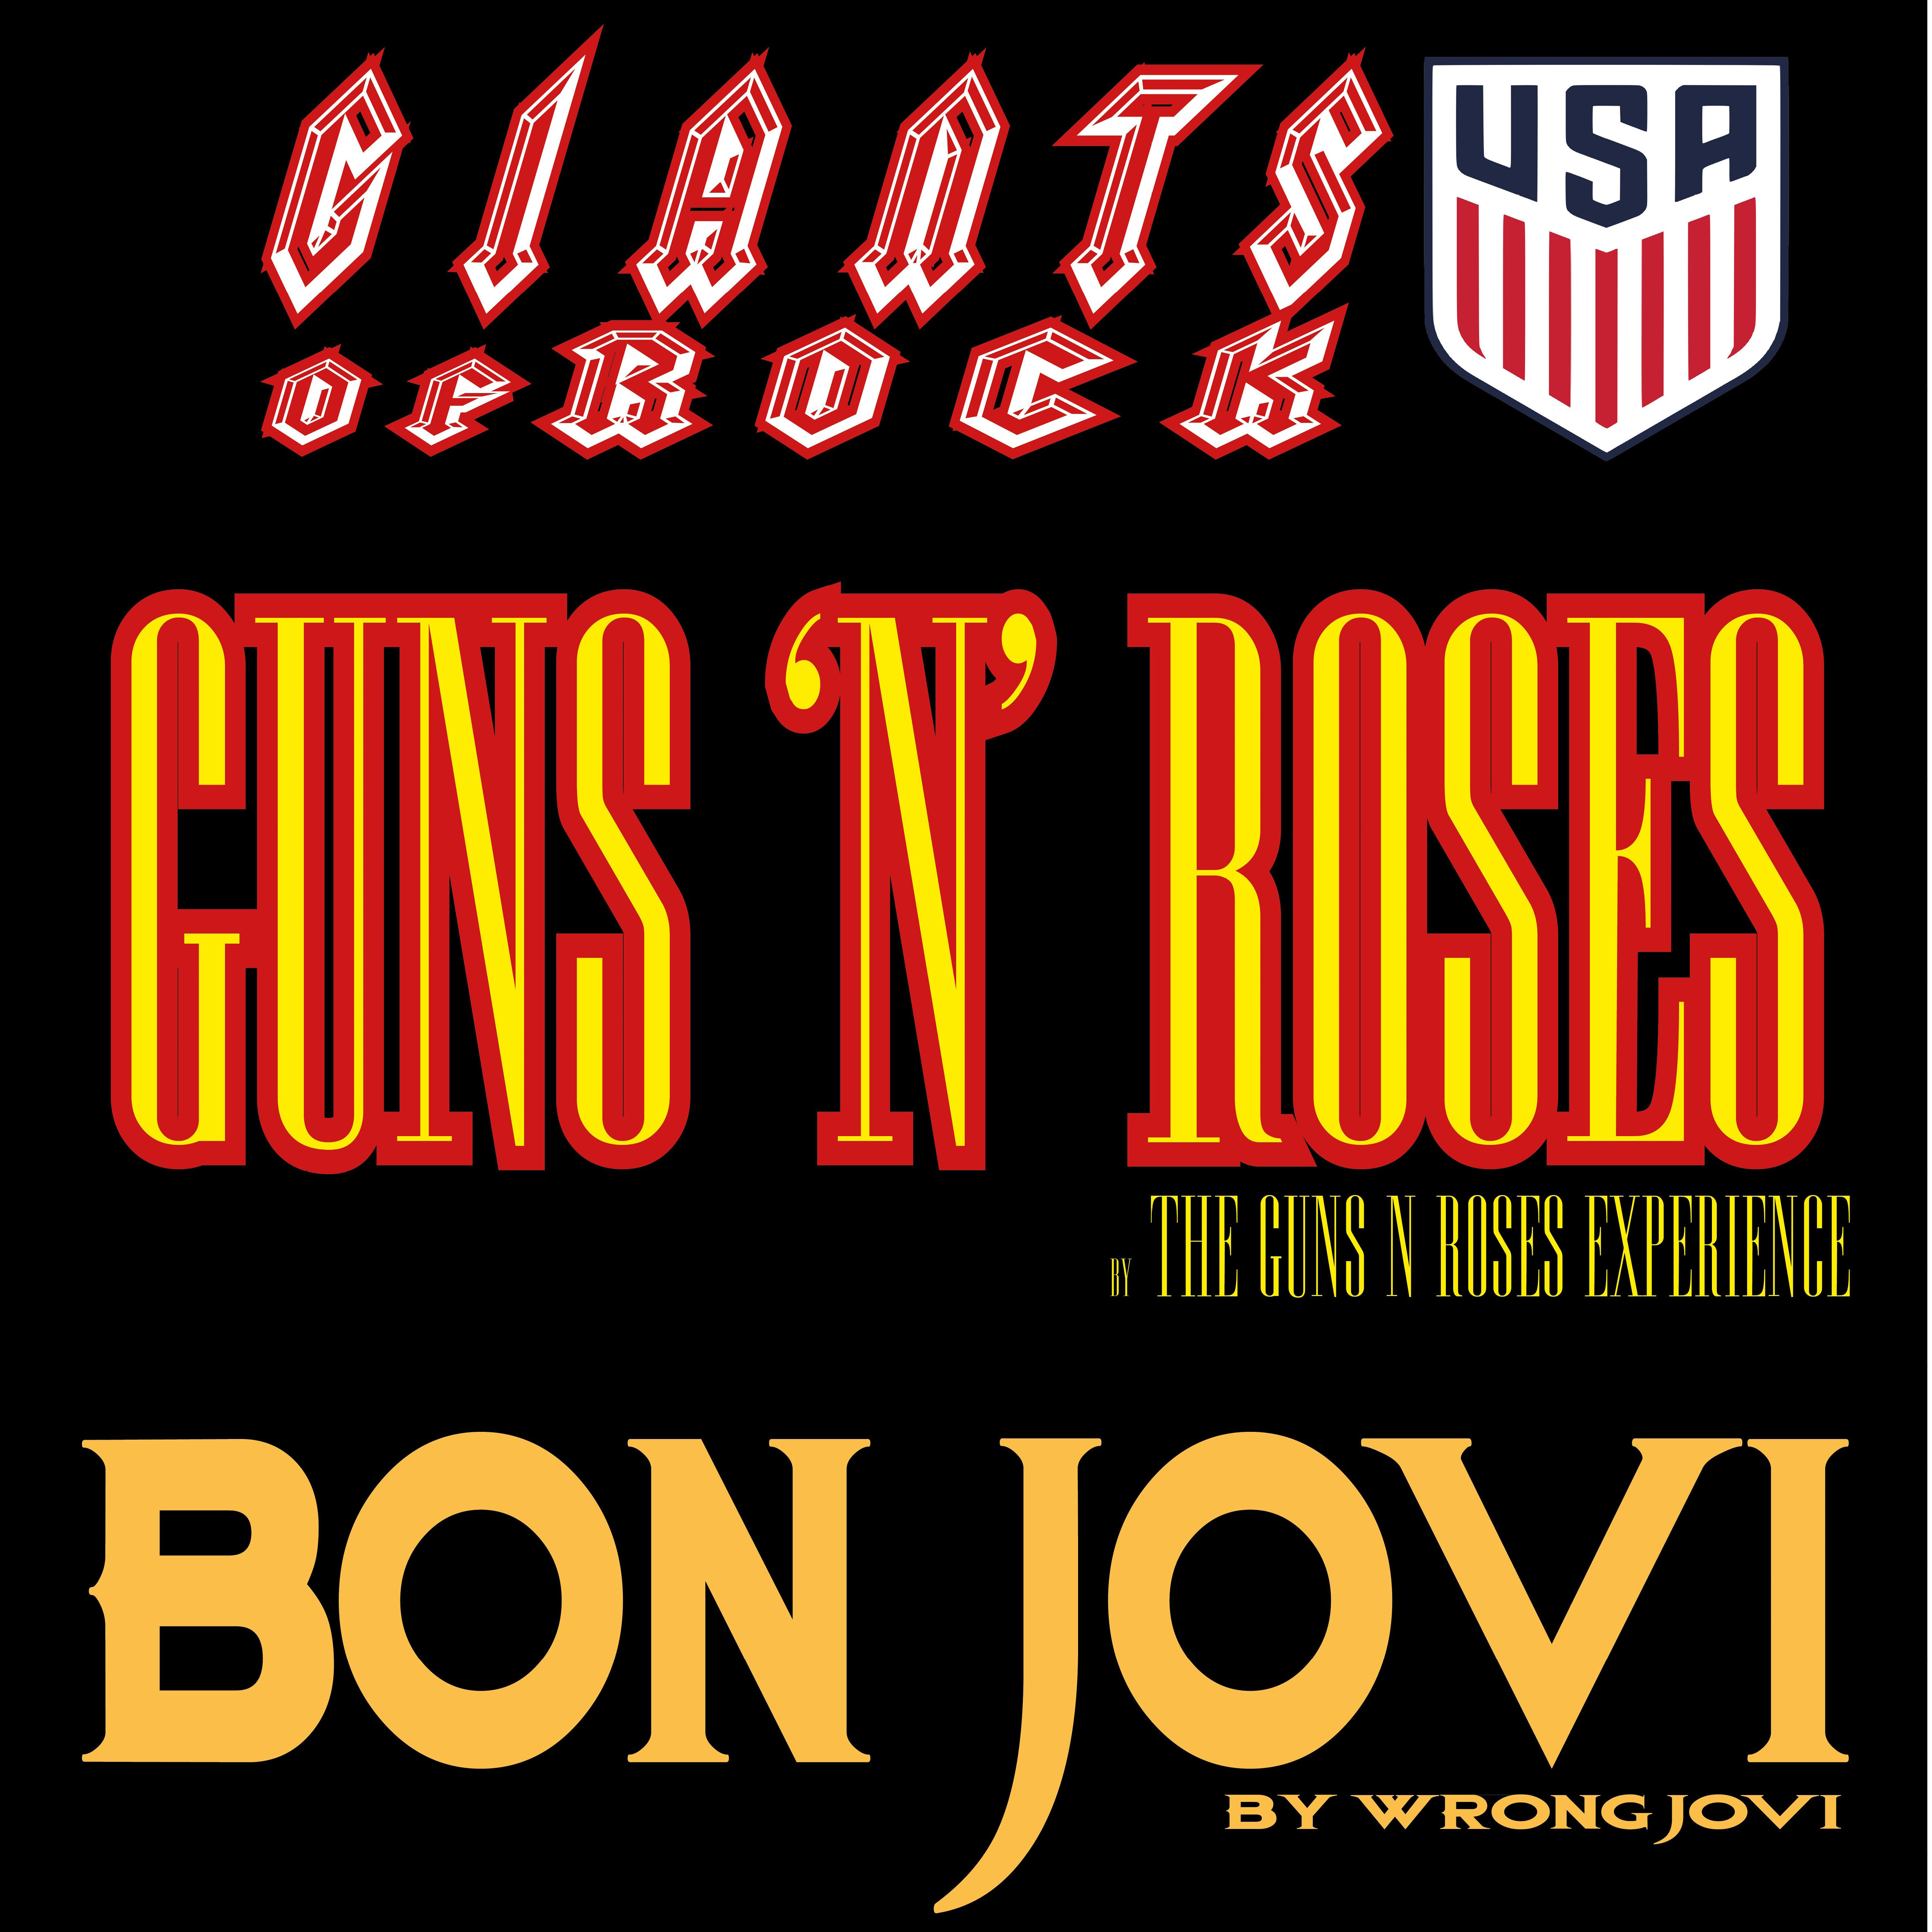 Image for - The Guns N'Roses Experience and Wrong Jovi at The Slade Rooms